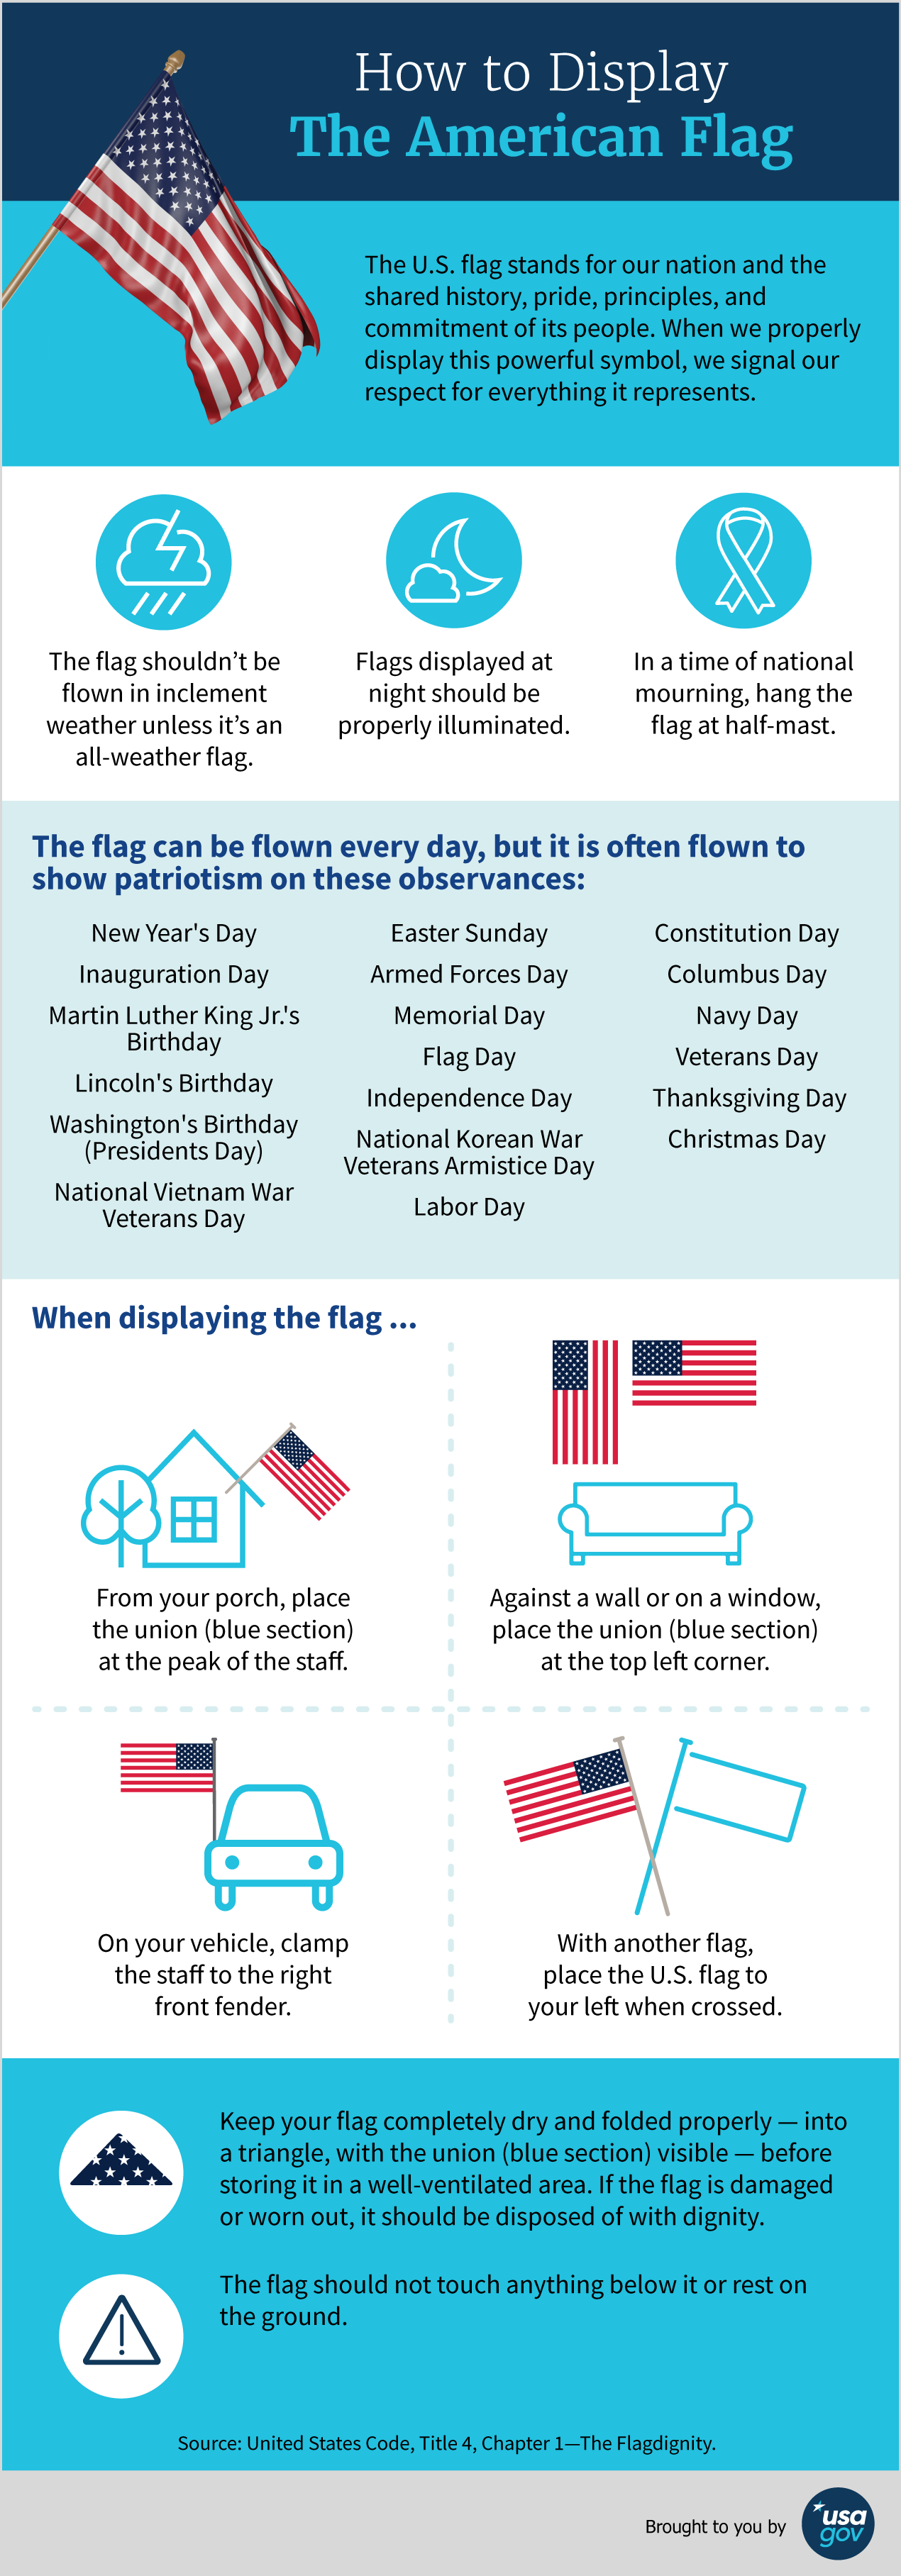 Infographic explaining how to display the American flag properly in different situations.